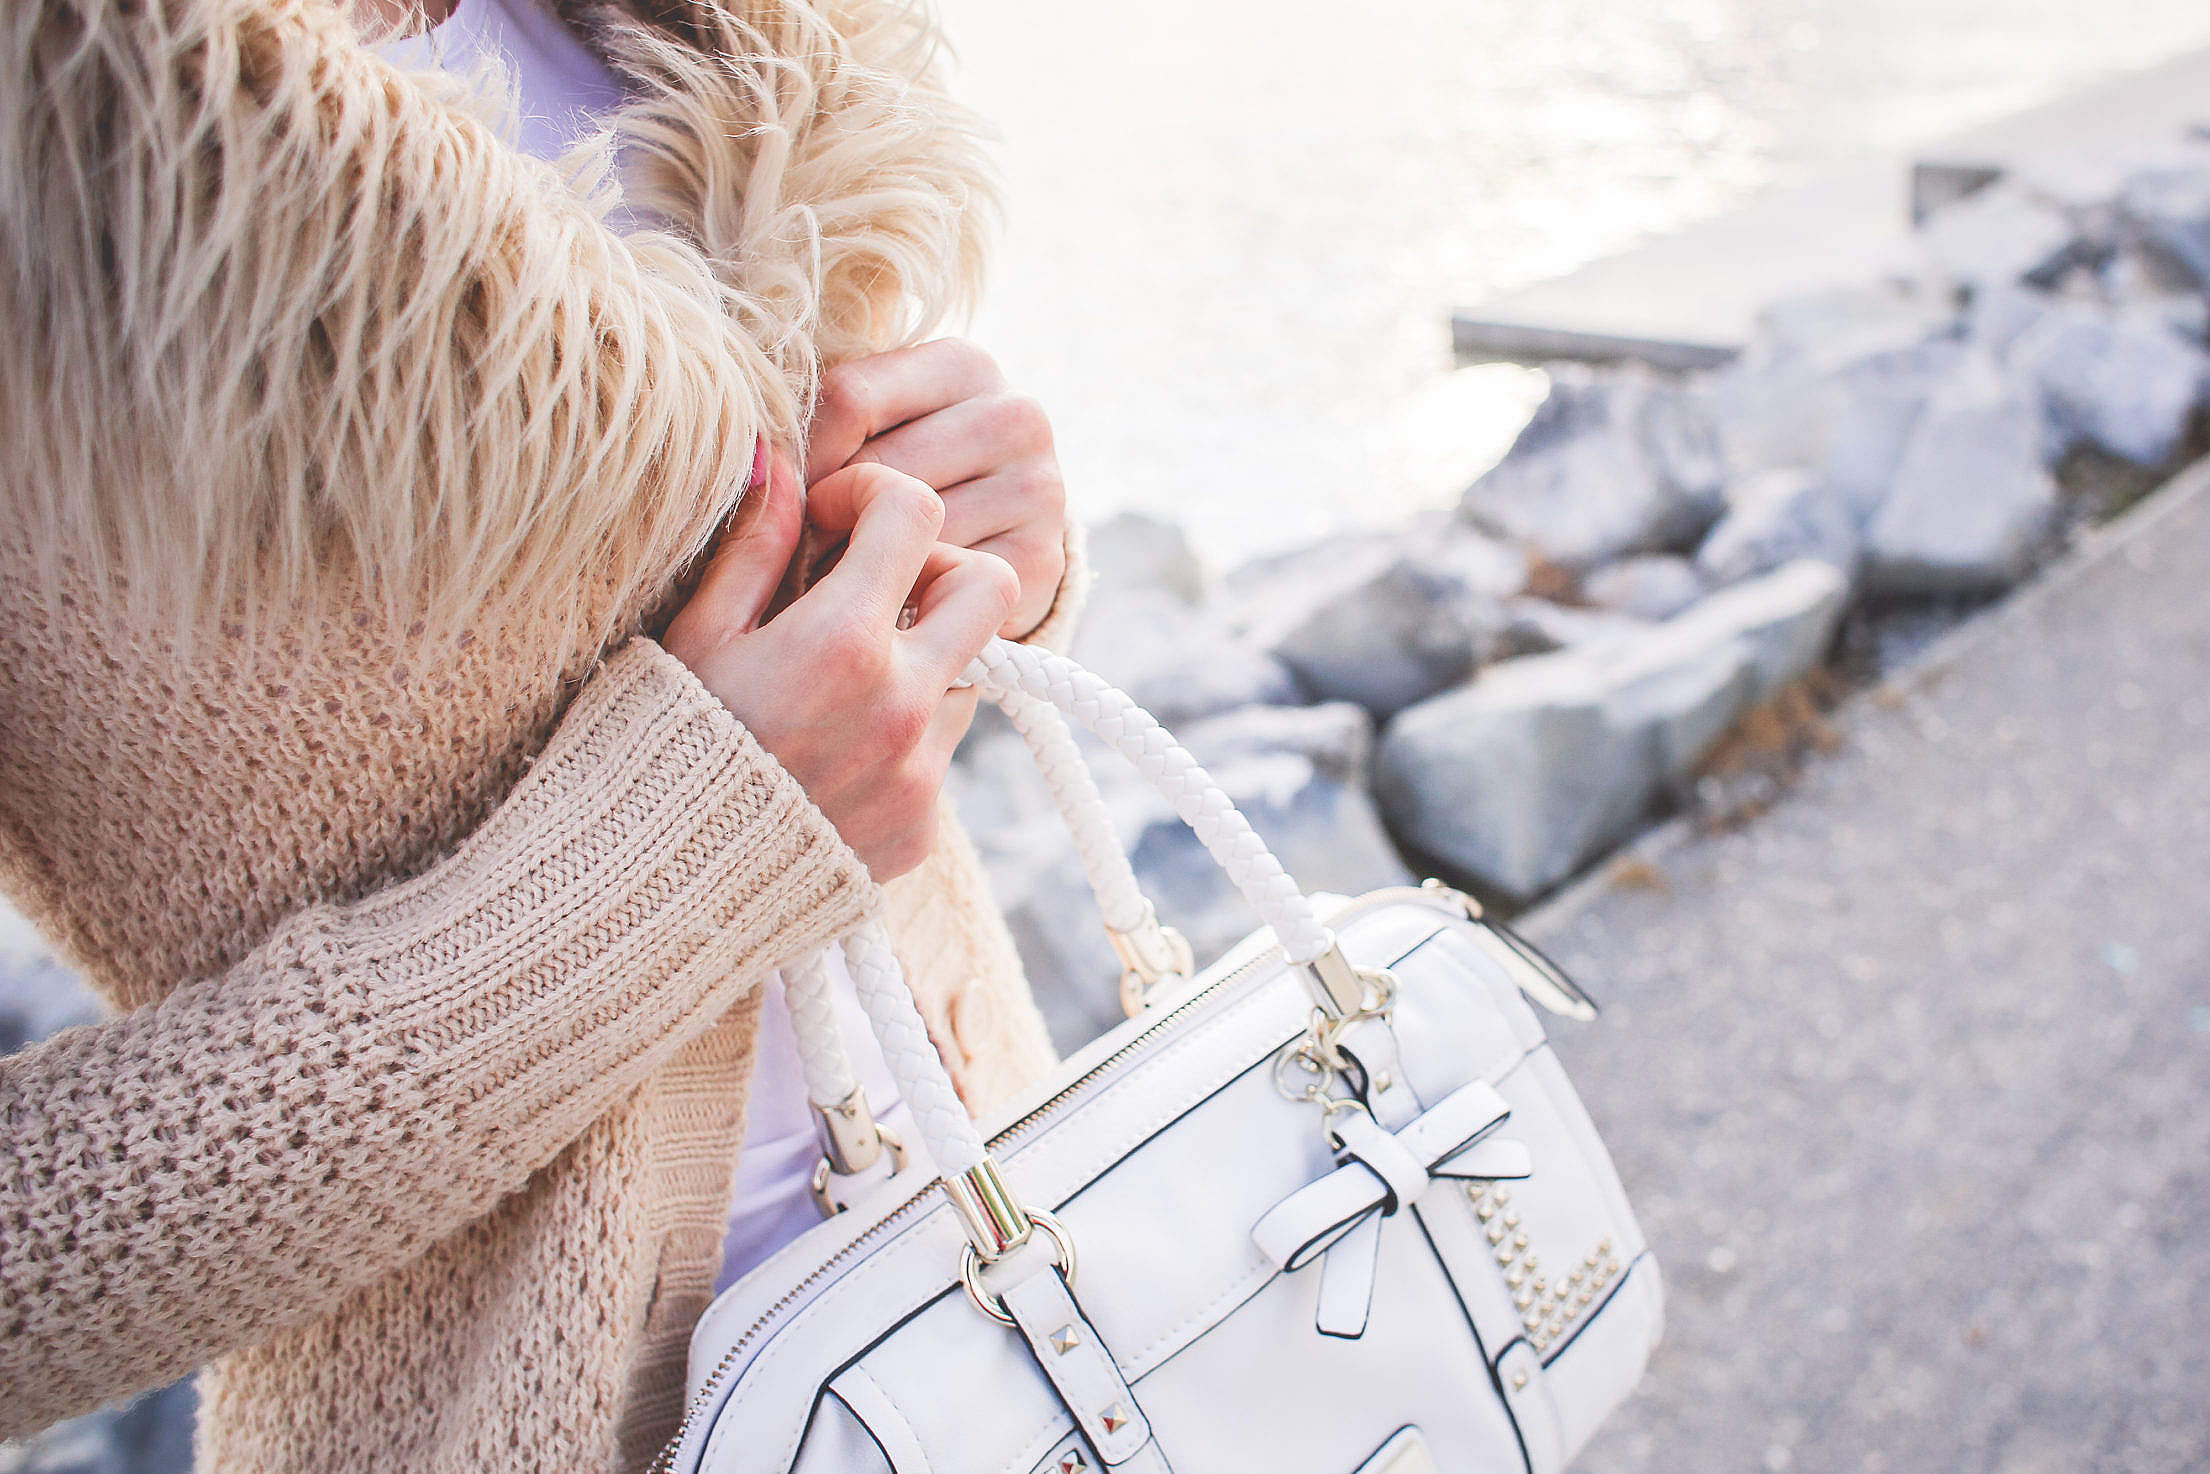 Girl with a Brown Sweater Free Stock Photo